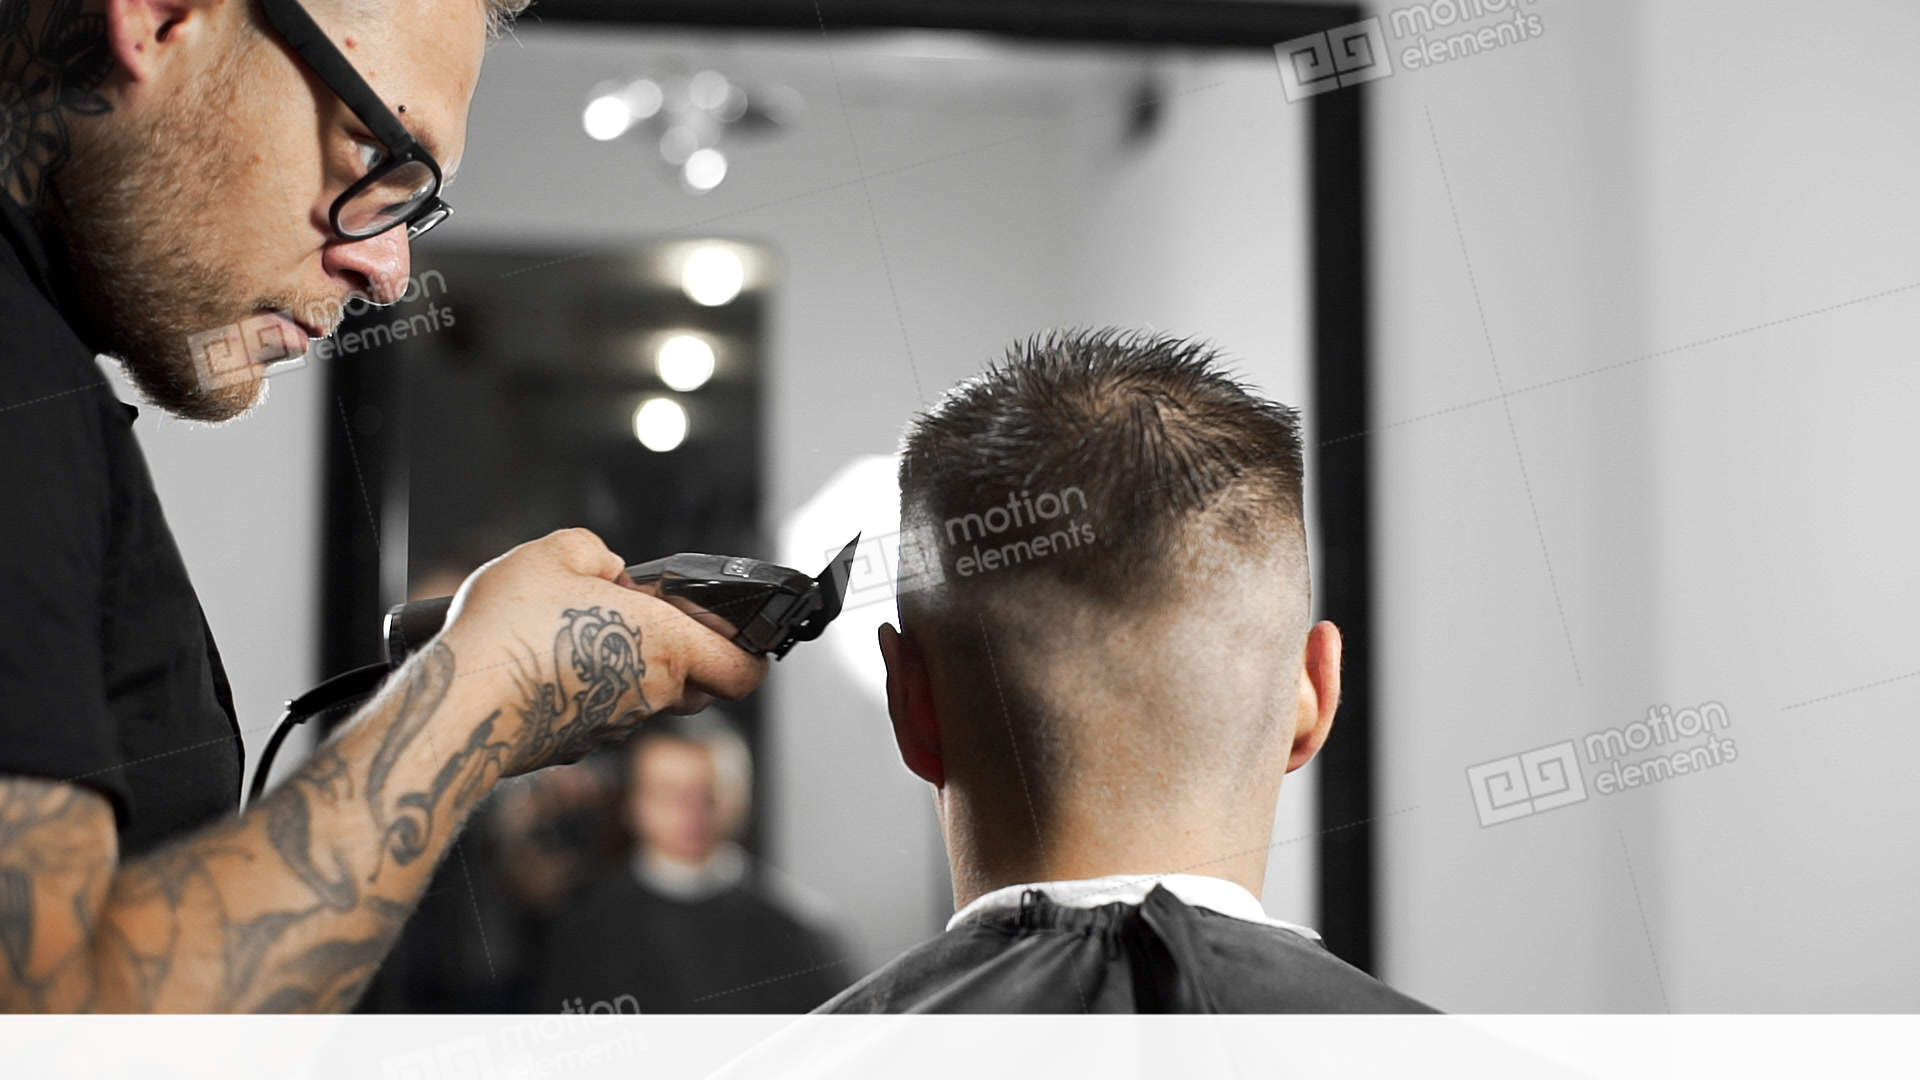 Tattoed Barber Makes Haircut For Customer At The Barber Shop By